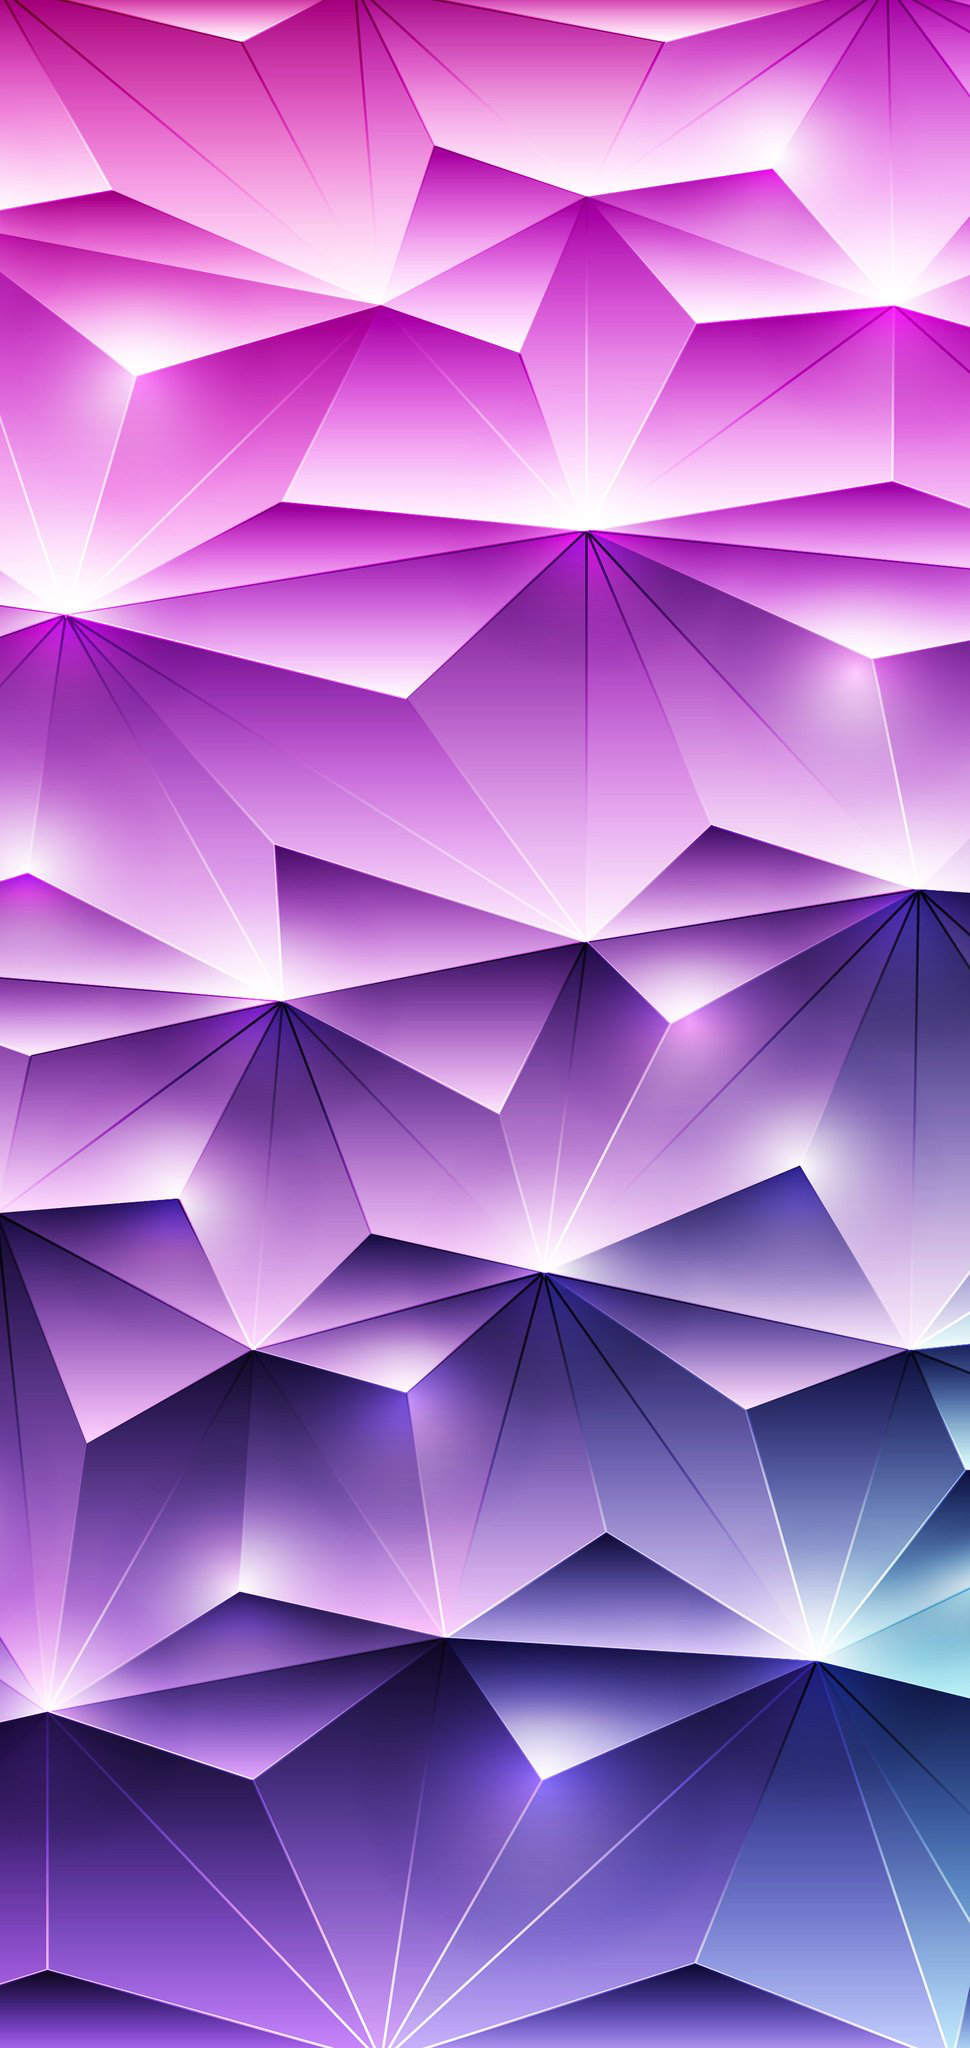 Abstract geometric iPhone wallpaper pack in 2020